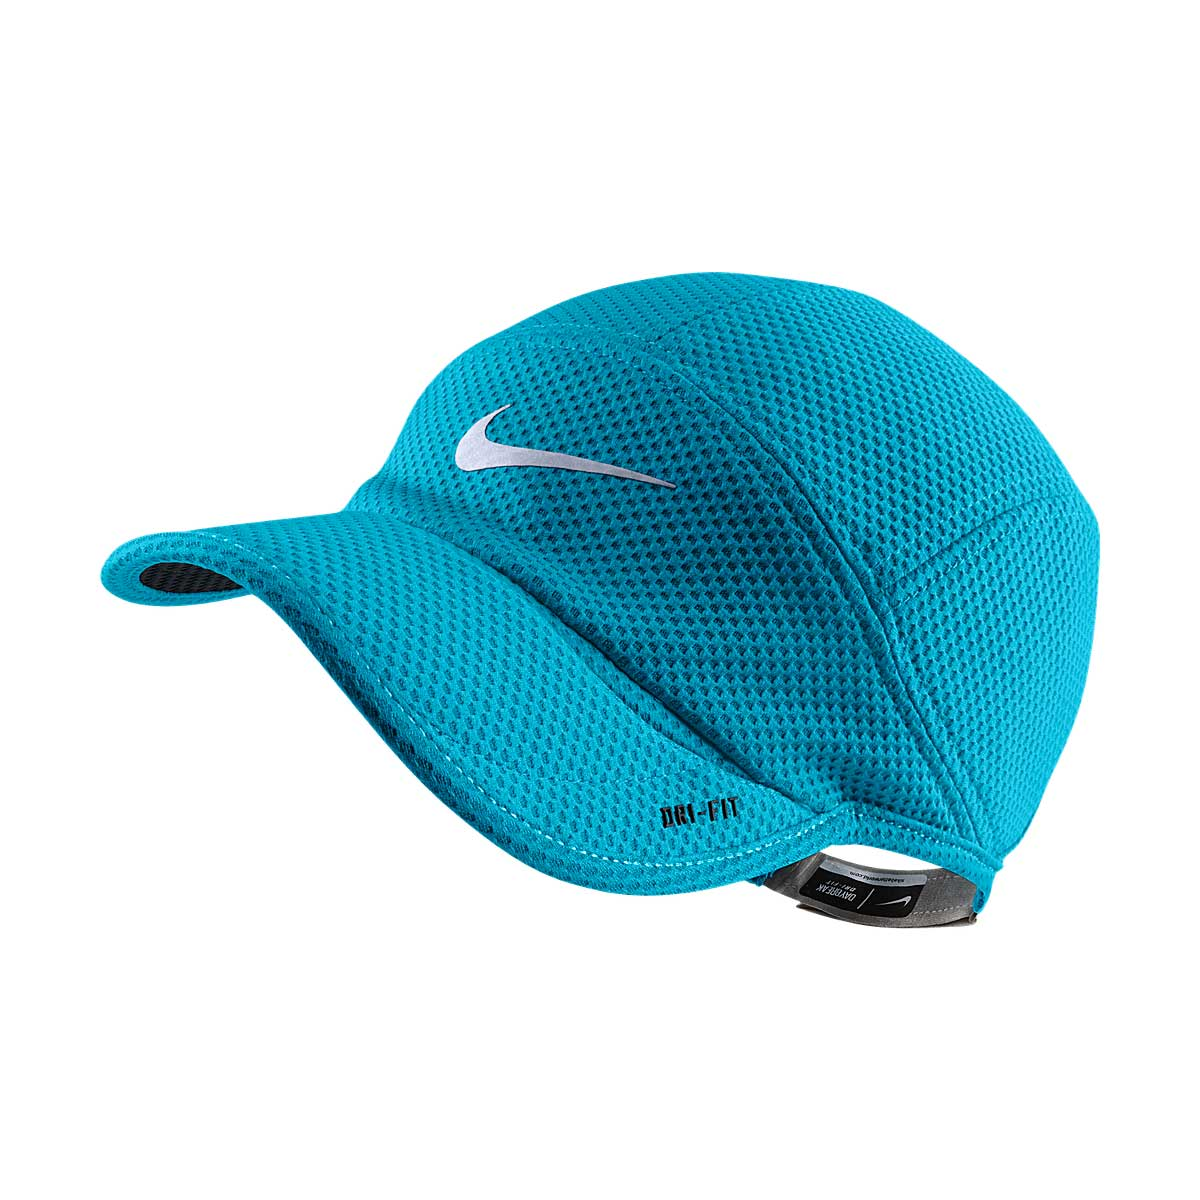 518f4be4b181 Buy Nike Dri-fit Mesh Cap Online India